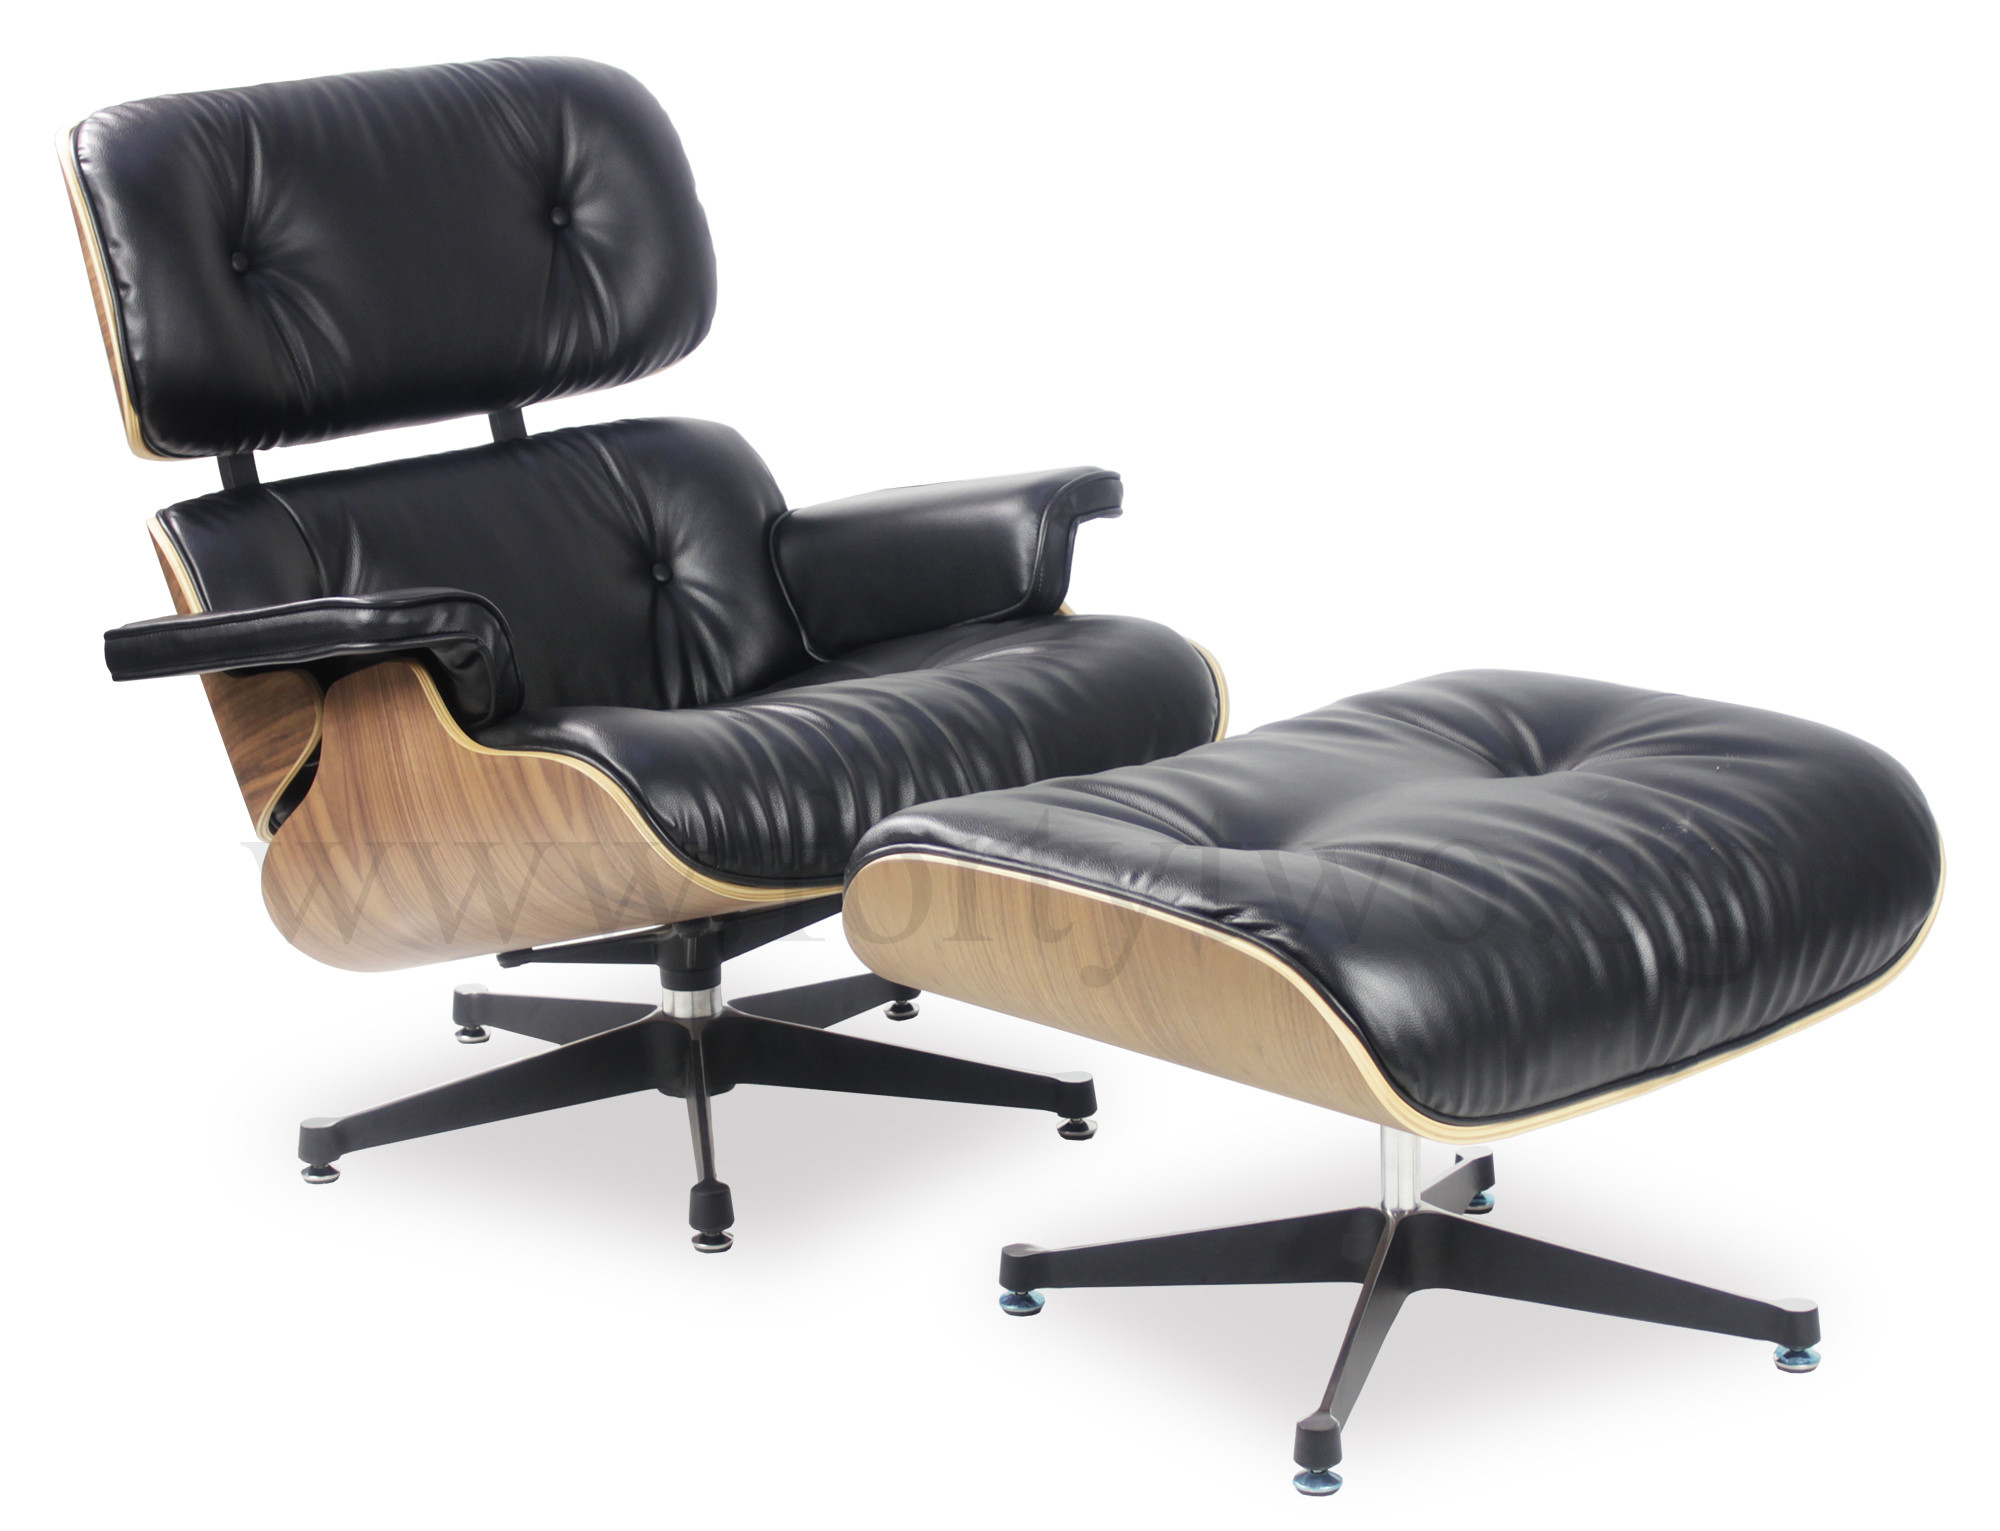 Designer replica eames lounge chair black furniture for Eames chair replica deutschland